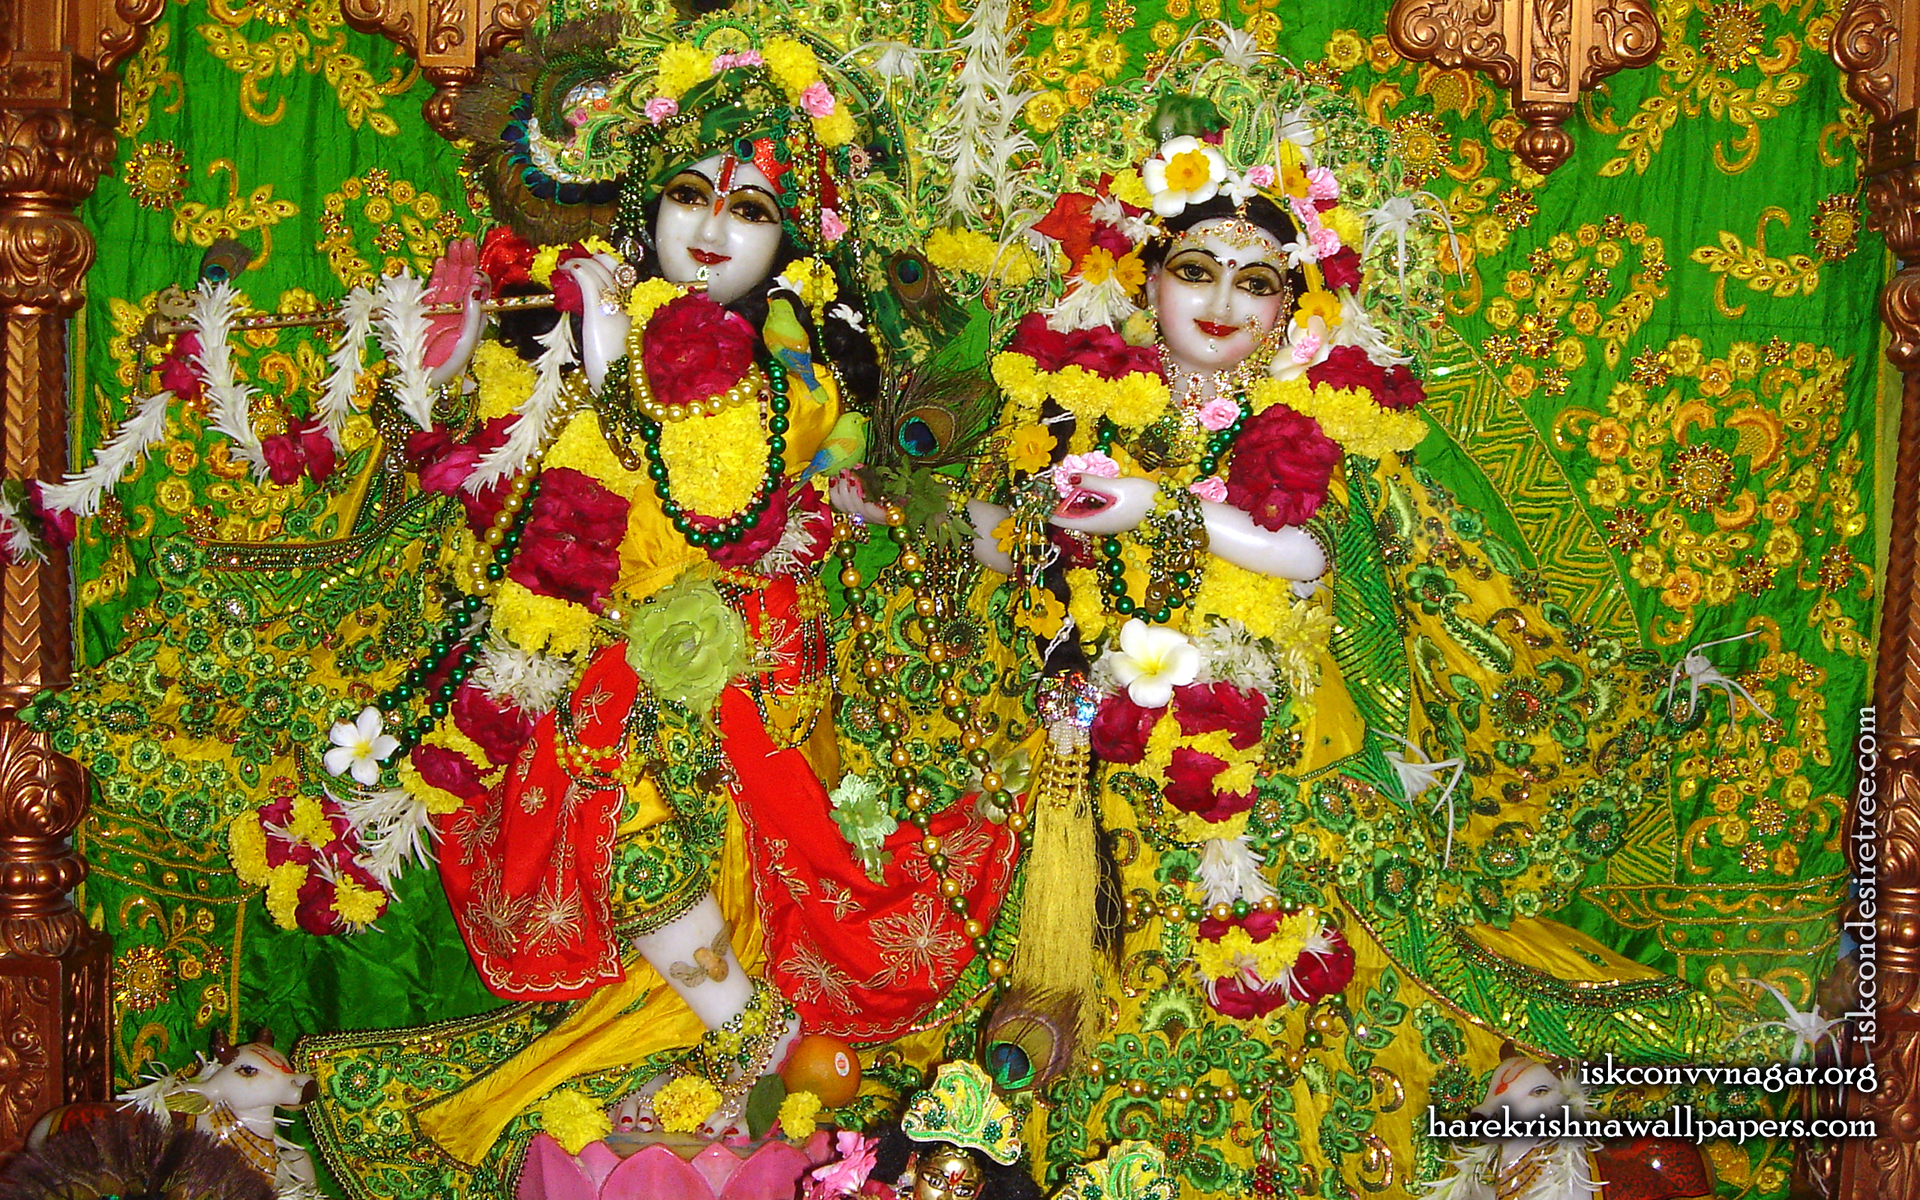 Sri Sri Radha Giridhari Wallpaper (011) Size 1920x1200 Download